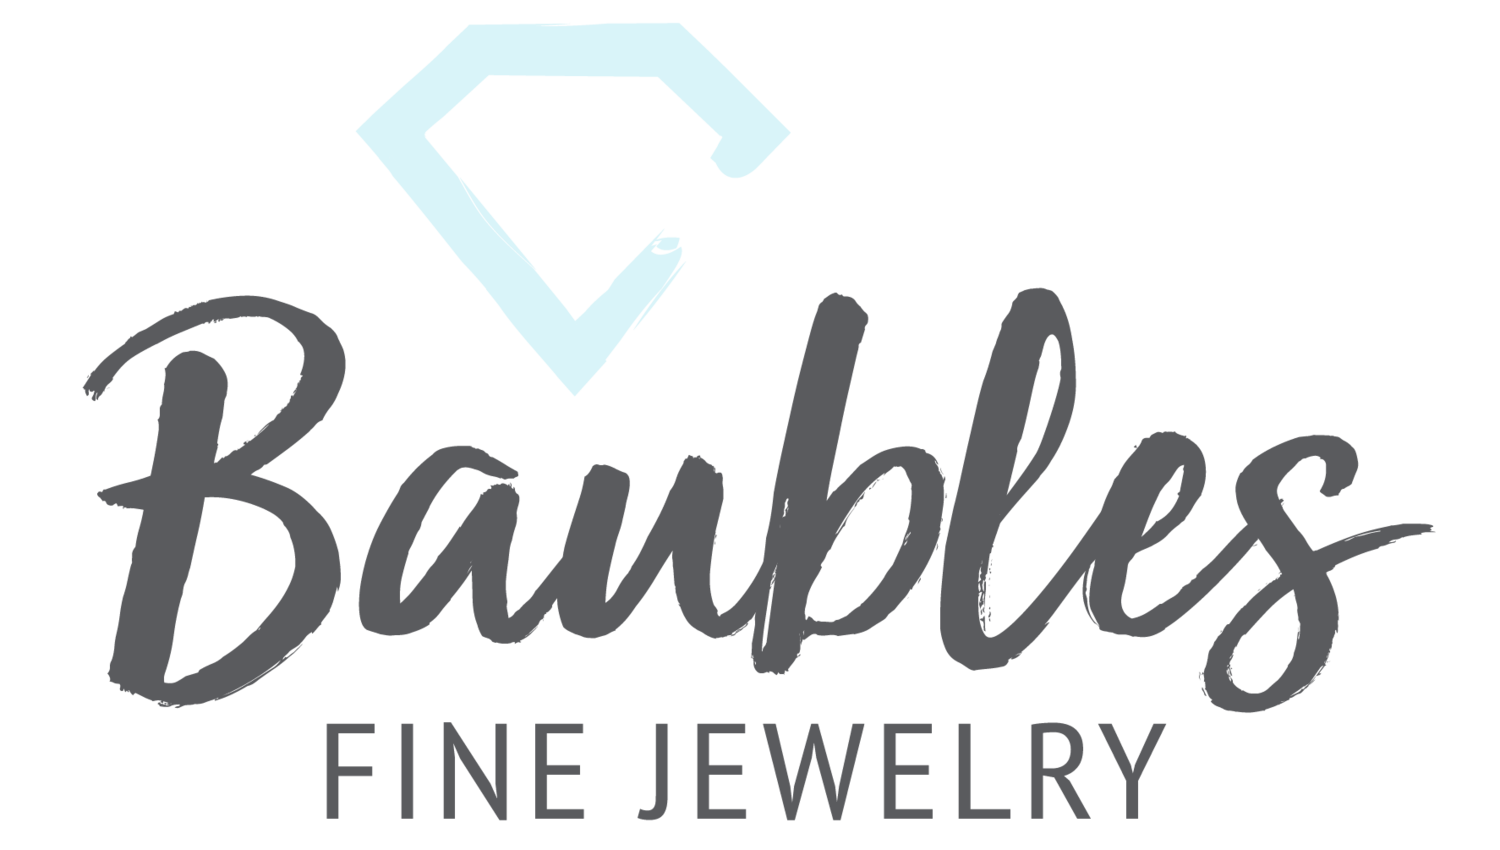 Baubles Fine Jewelry